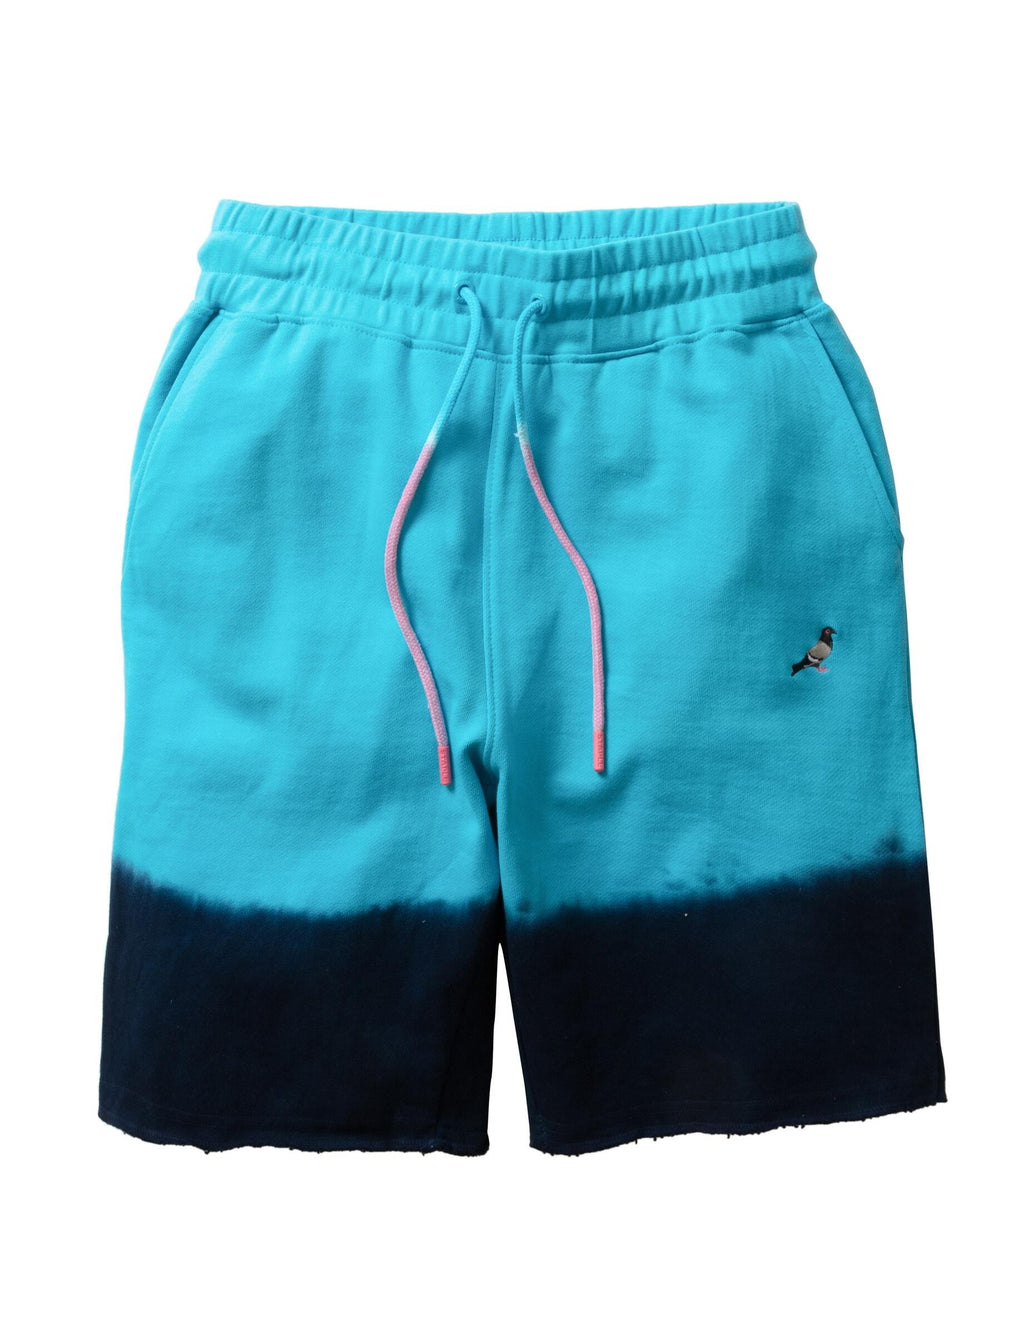 Dyed Panel Sweatshort - Shorts | Staple Pigeon